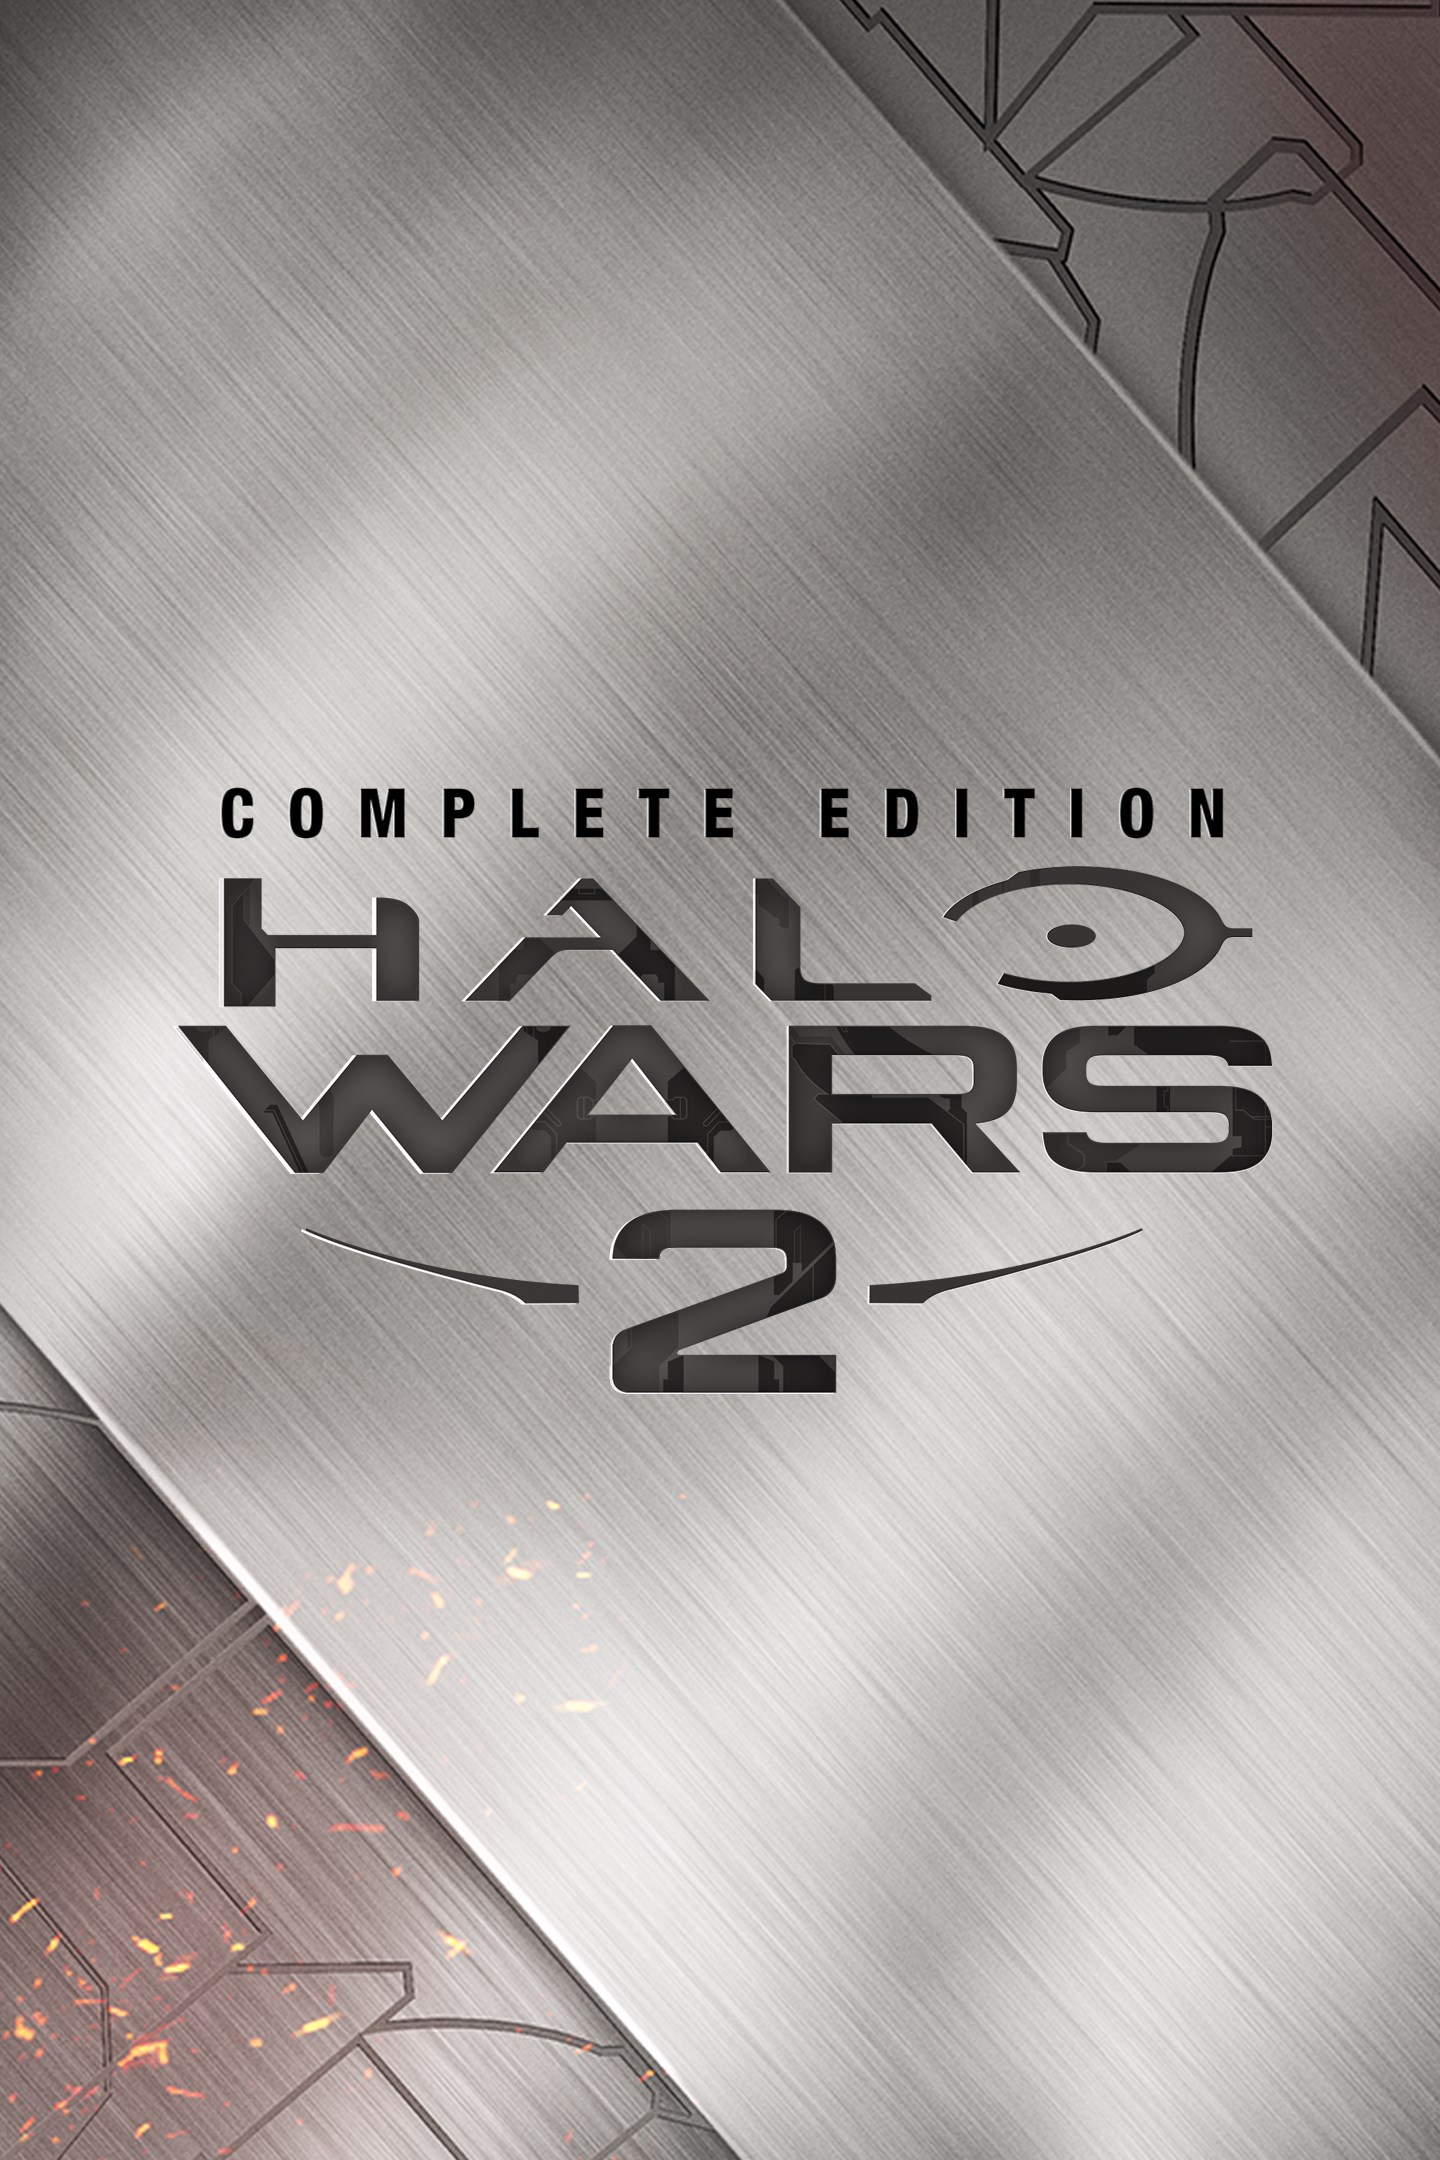 Buy Halo Wars 2: Complete Edition - Microsoft Store en-GB